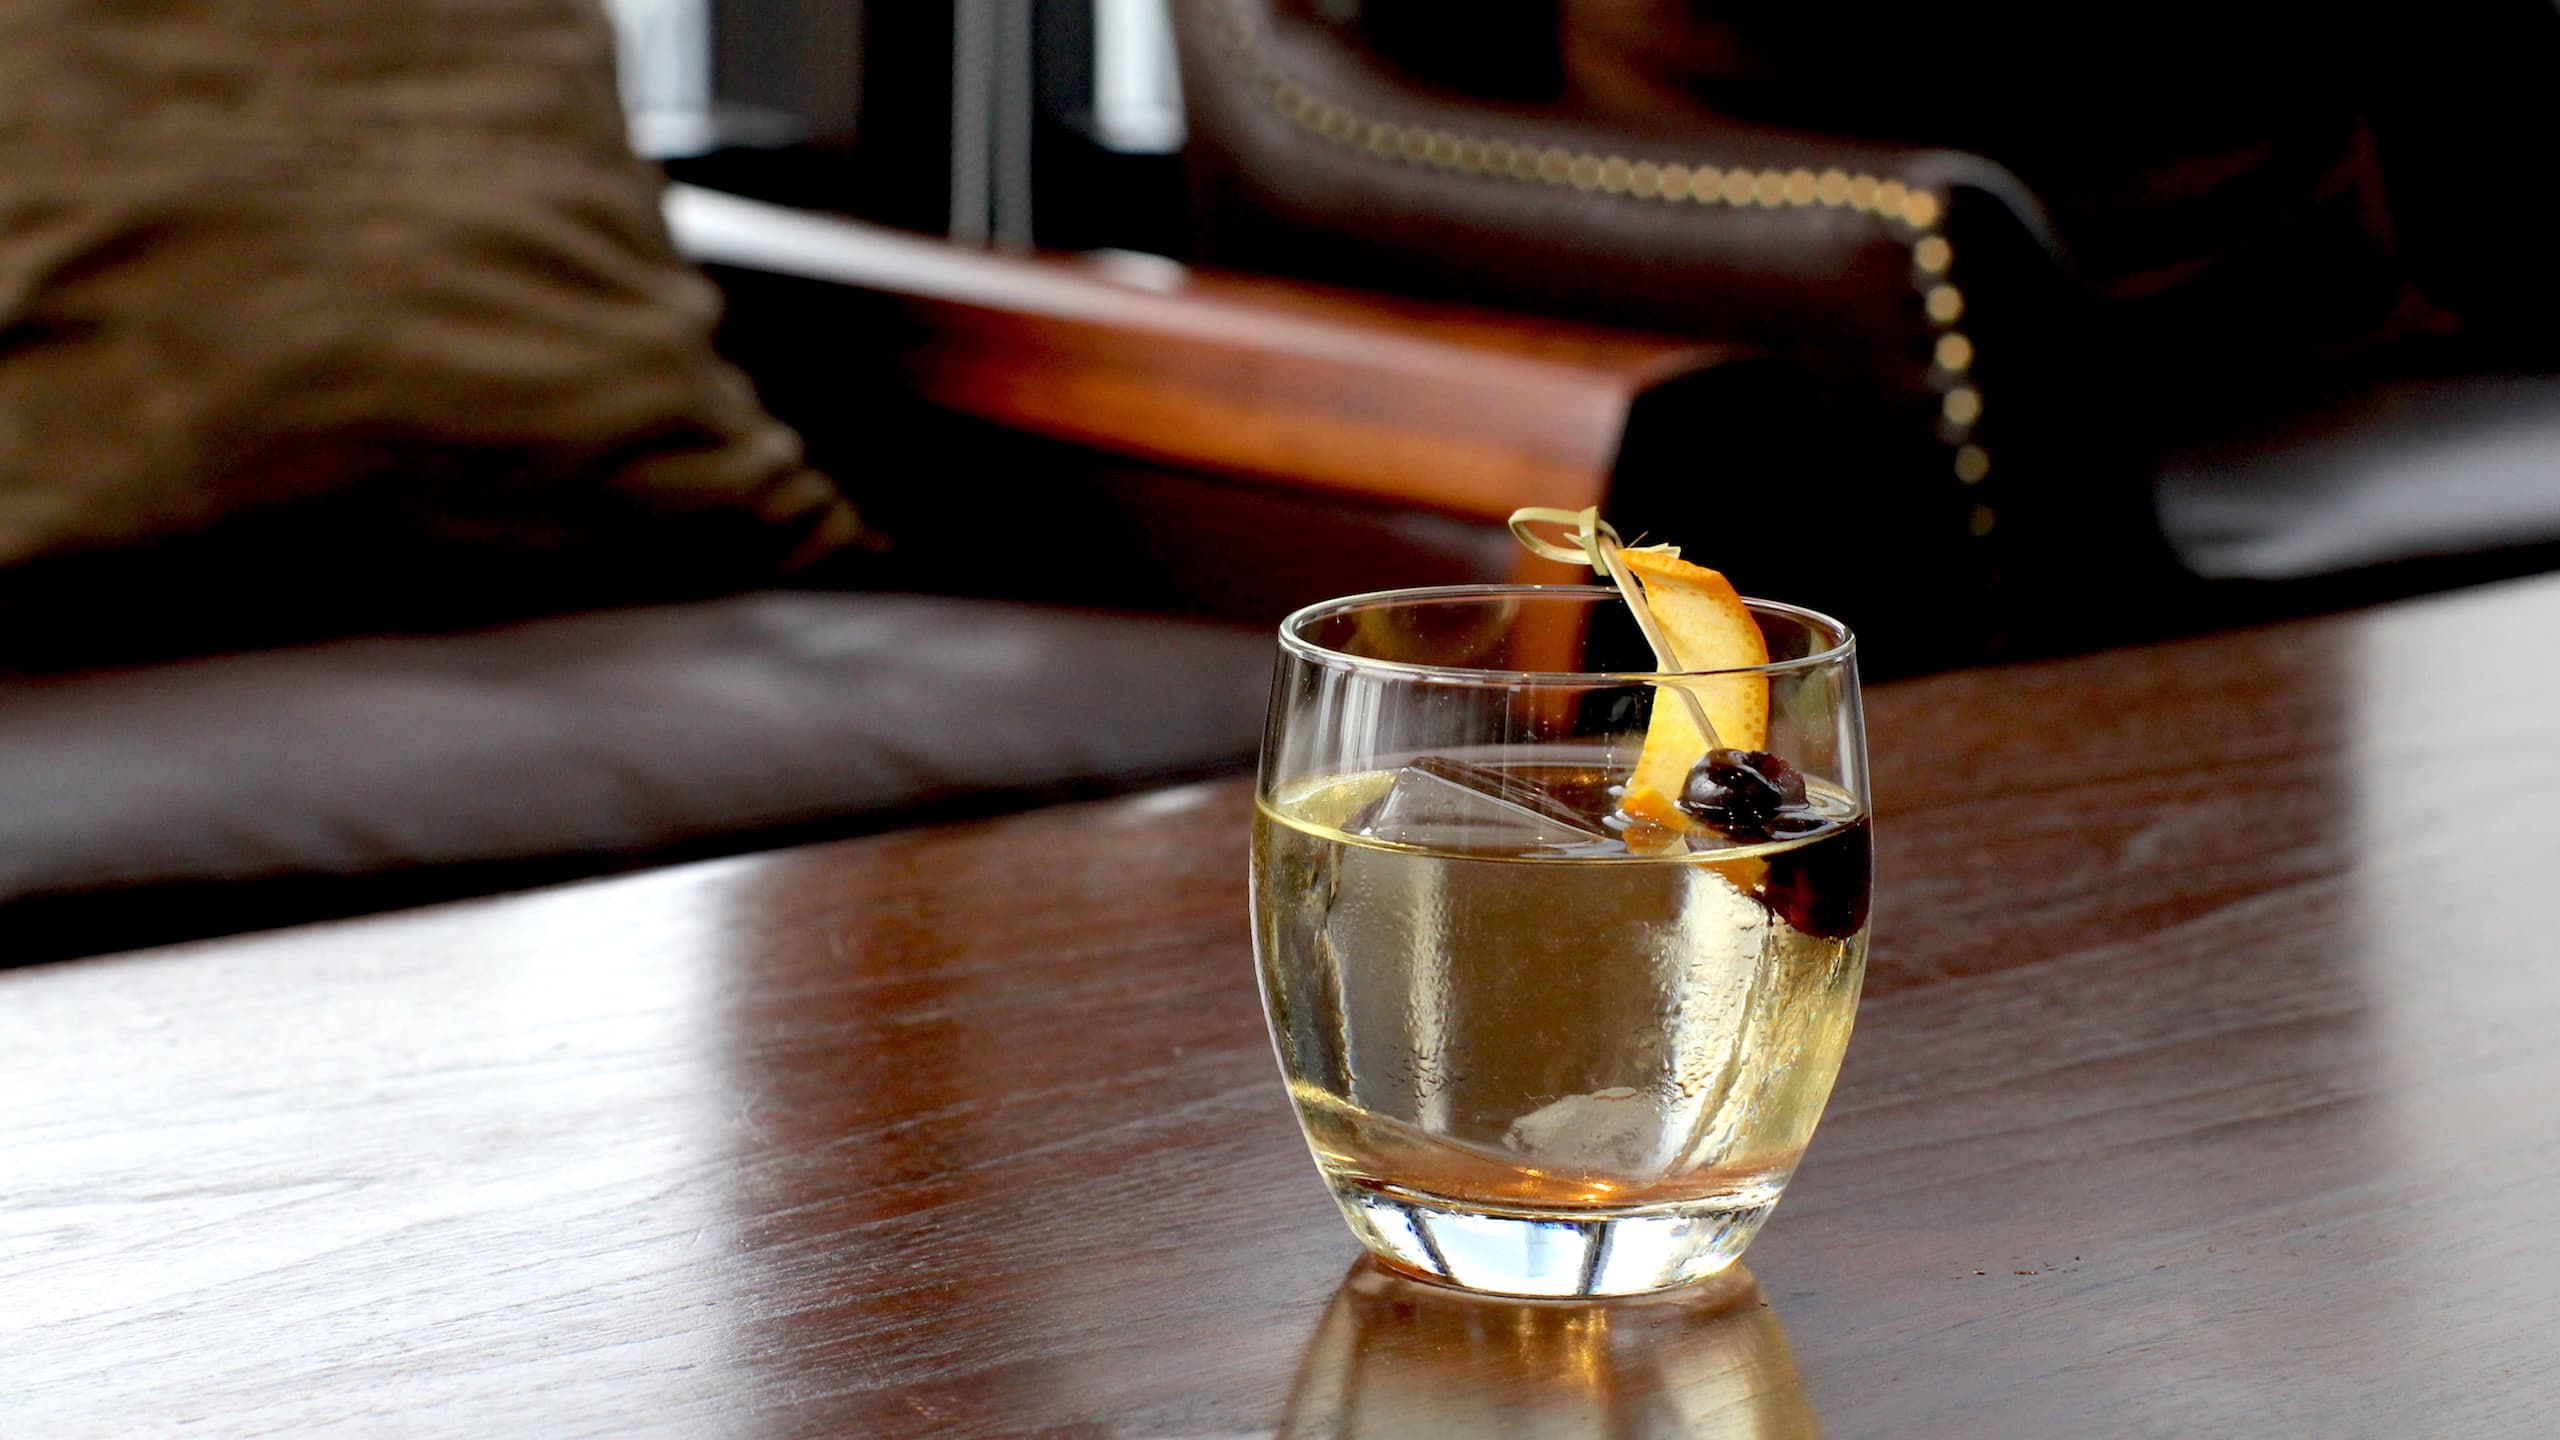 Bring on the bourbon with Hong Kong's best Old Fashioneds